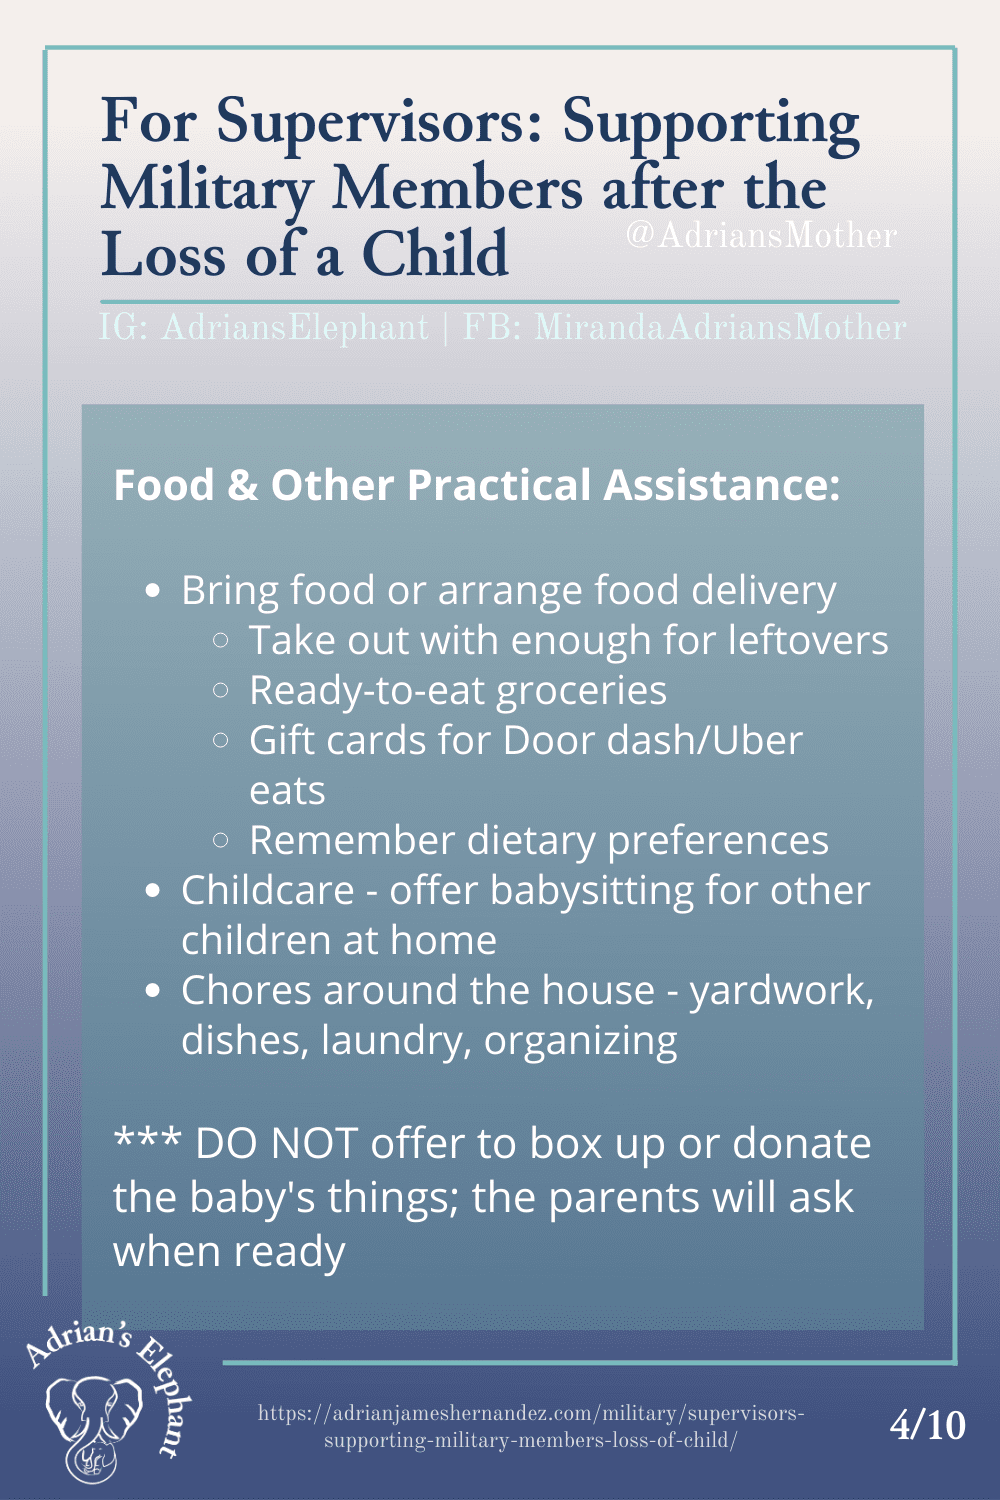 For Supervisors: Supporting Military Members after the Loss of a Child - Food & Other Practical Assistance: - Bring food or arrange food delivery --- Take out with enough for leftovers --- Ready-to-eat groceries --- Gift cards for Door dash/Uber eats --- Remember dietary preferences - Childcare - offer babysitting for other children at home - Chores around the house - yardwork, dishes, laundry, organizing *** DO NOT offer to box up or donate the baby's things; the parents will ask when ready (4/10)